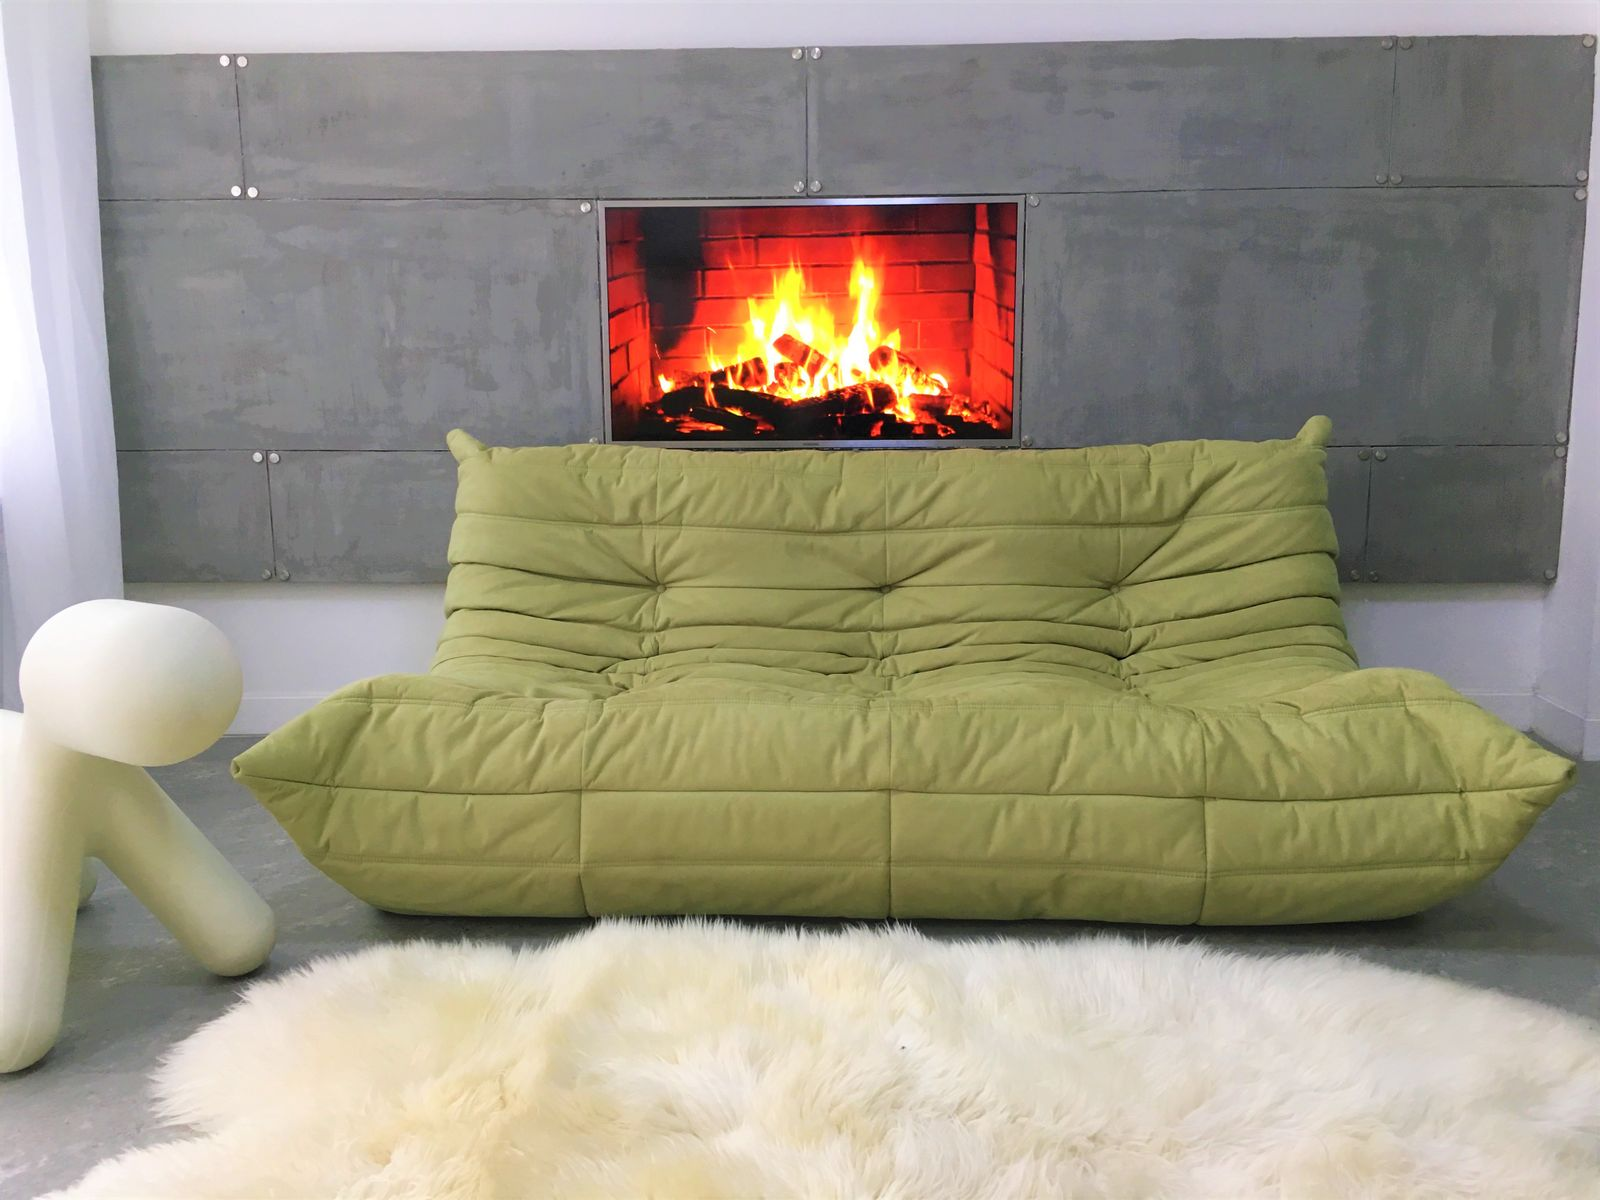 Full Size of Ligne Roset Sofa Togo Ebay For Sale Pumpkin Uk Second Hand Bed Review Cleaning Used Furniture Ireland Exclusif Multy Gebraucht Prado Green Three Seater Michel Sofa Ligne Roset Sofa